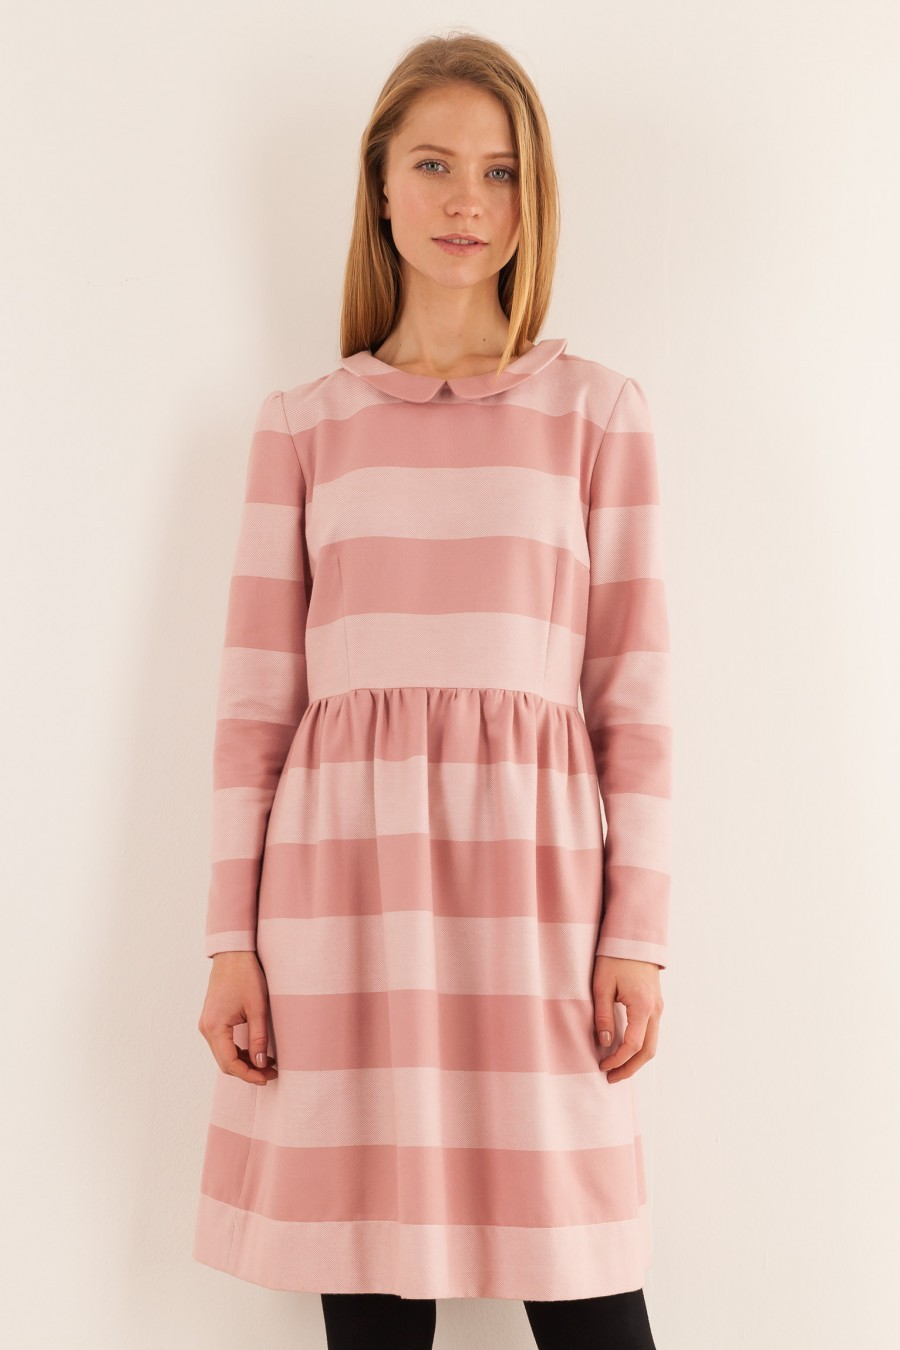 striped pink dress